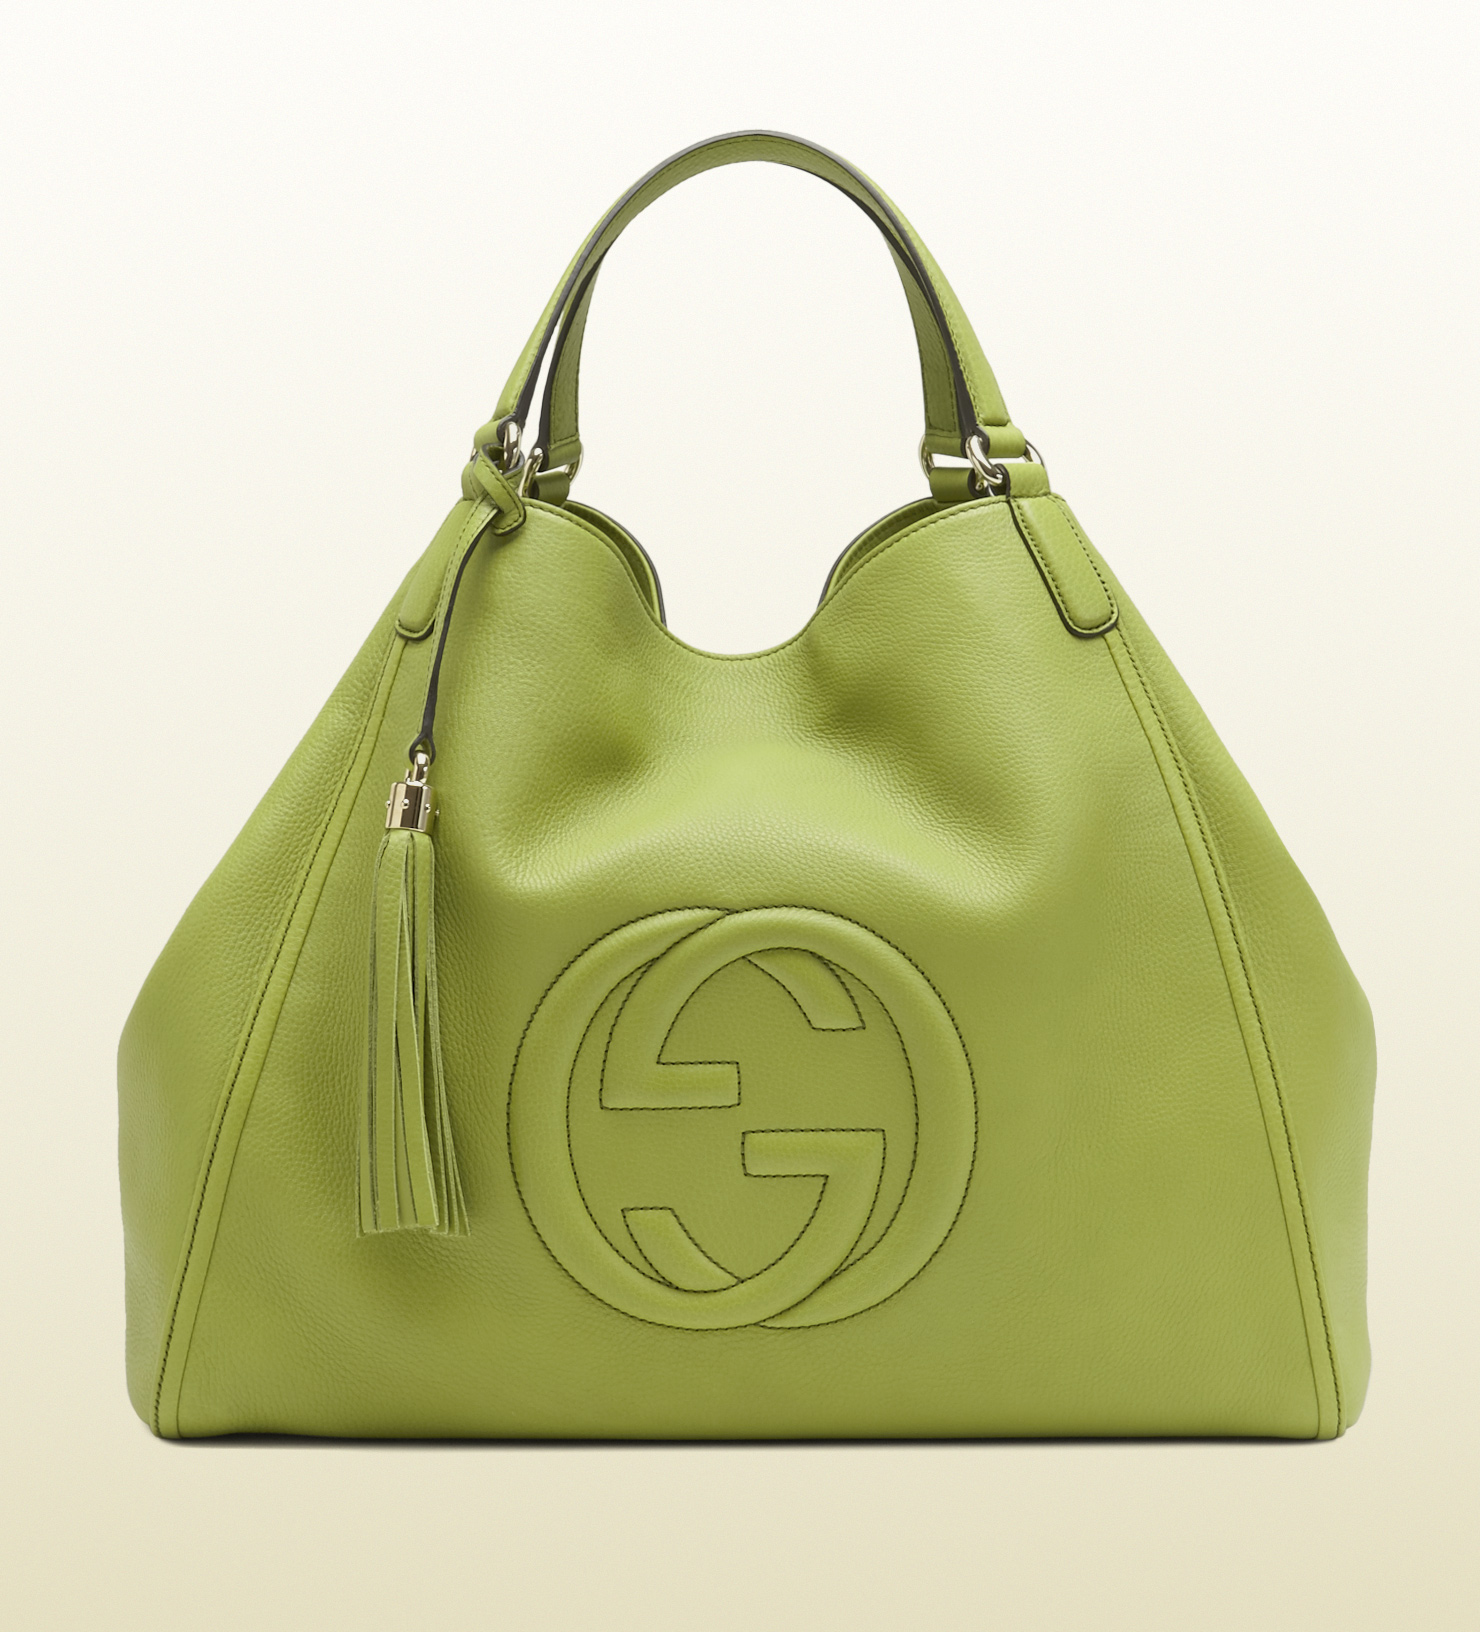 4165cd725aad Lyst - Gucci Soho Apple Green Leather Shoulder Bag in Green